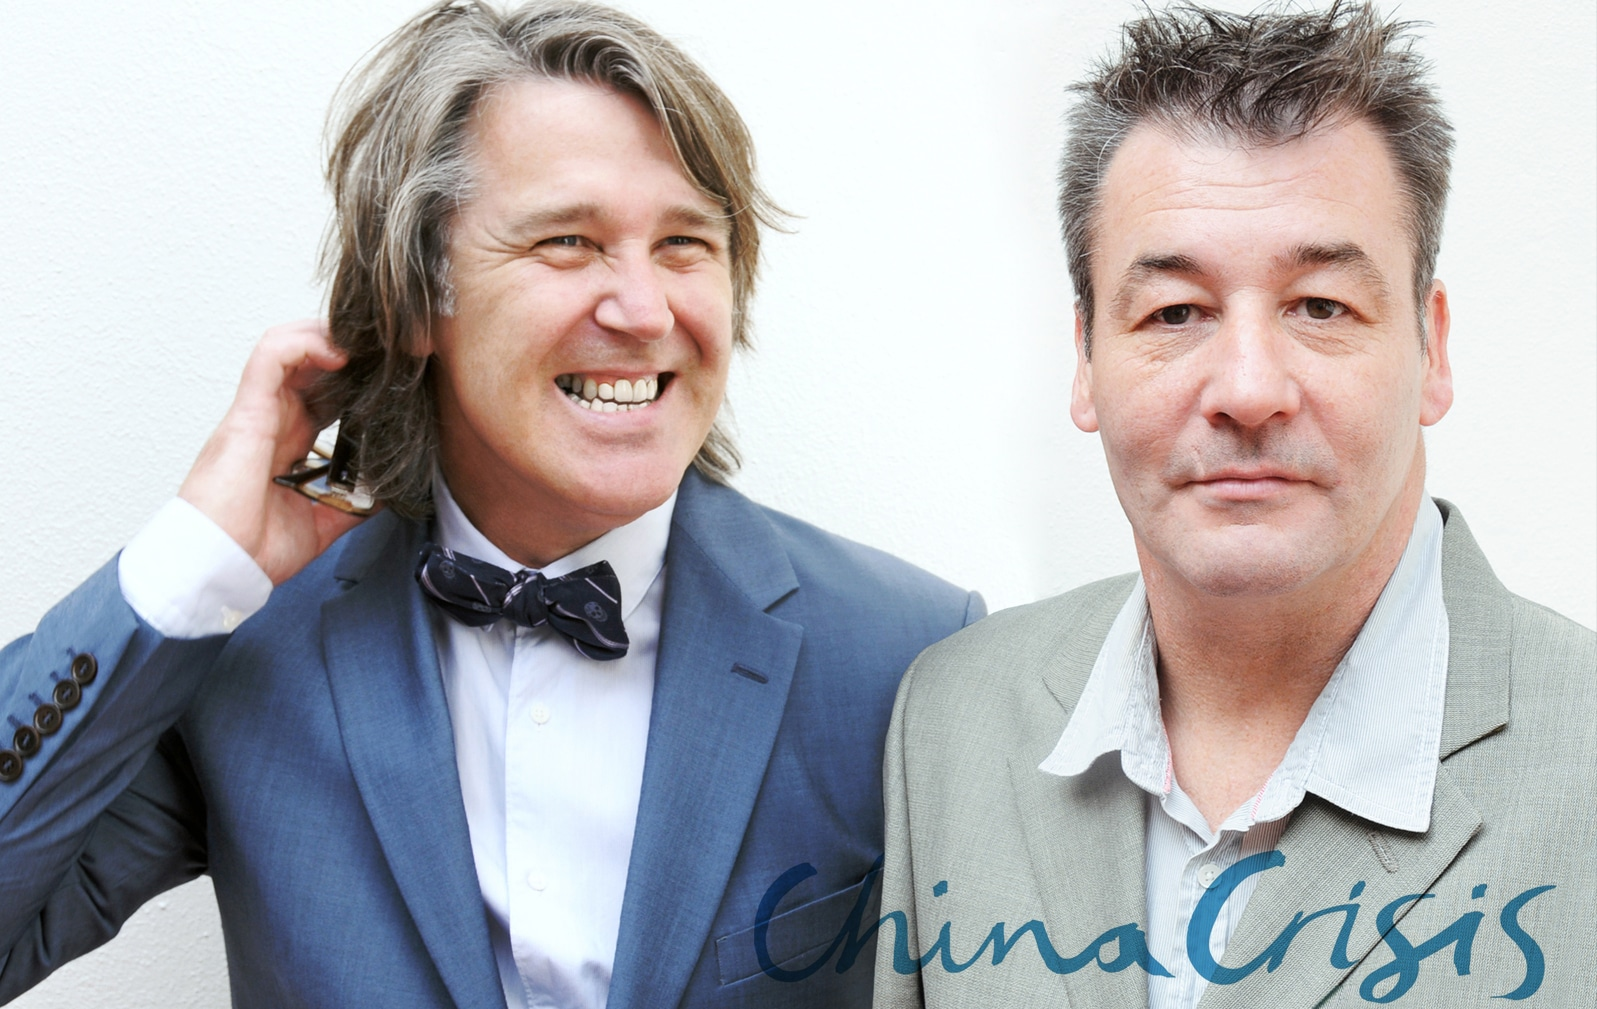 interview China Crisis